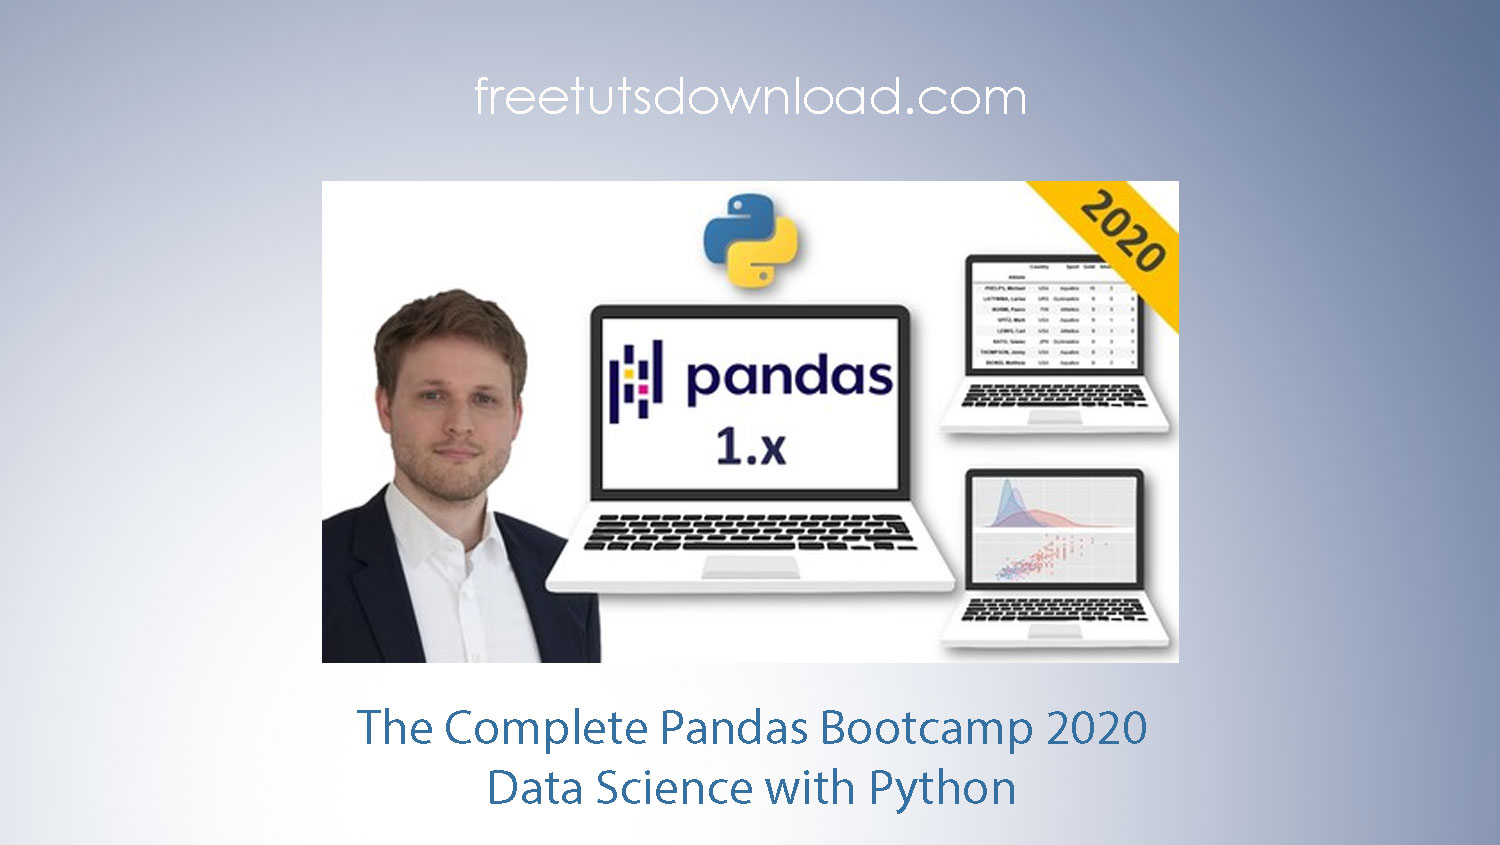 The Complete Pandas Bootcamp 2020: Data Science with Python